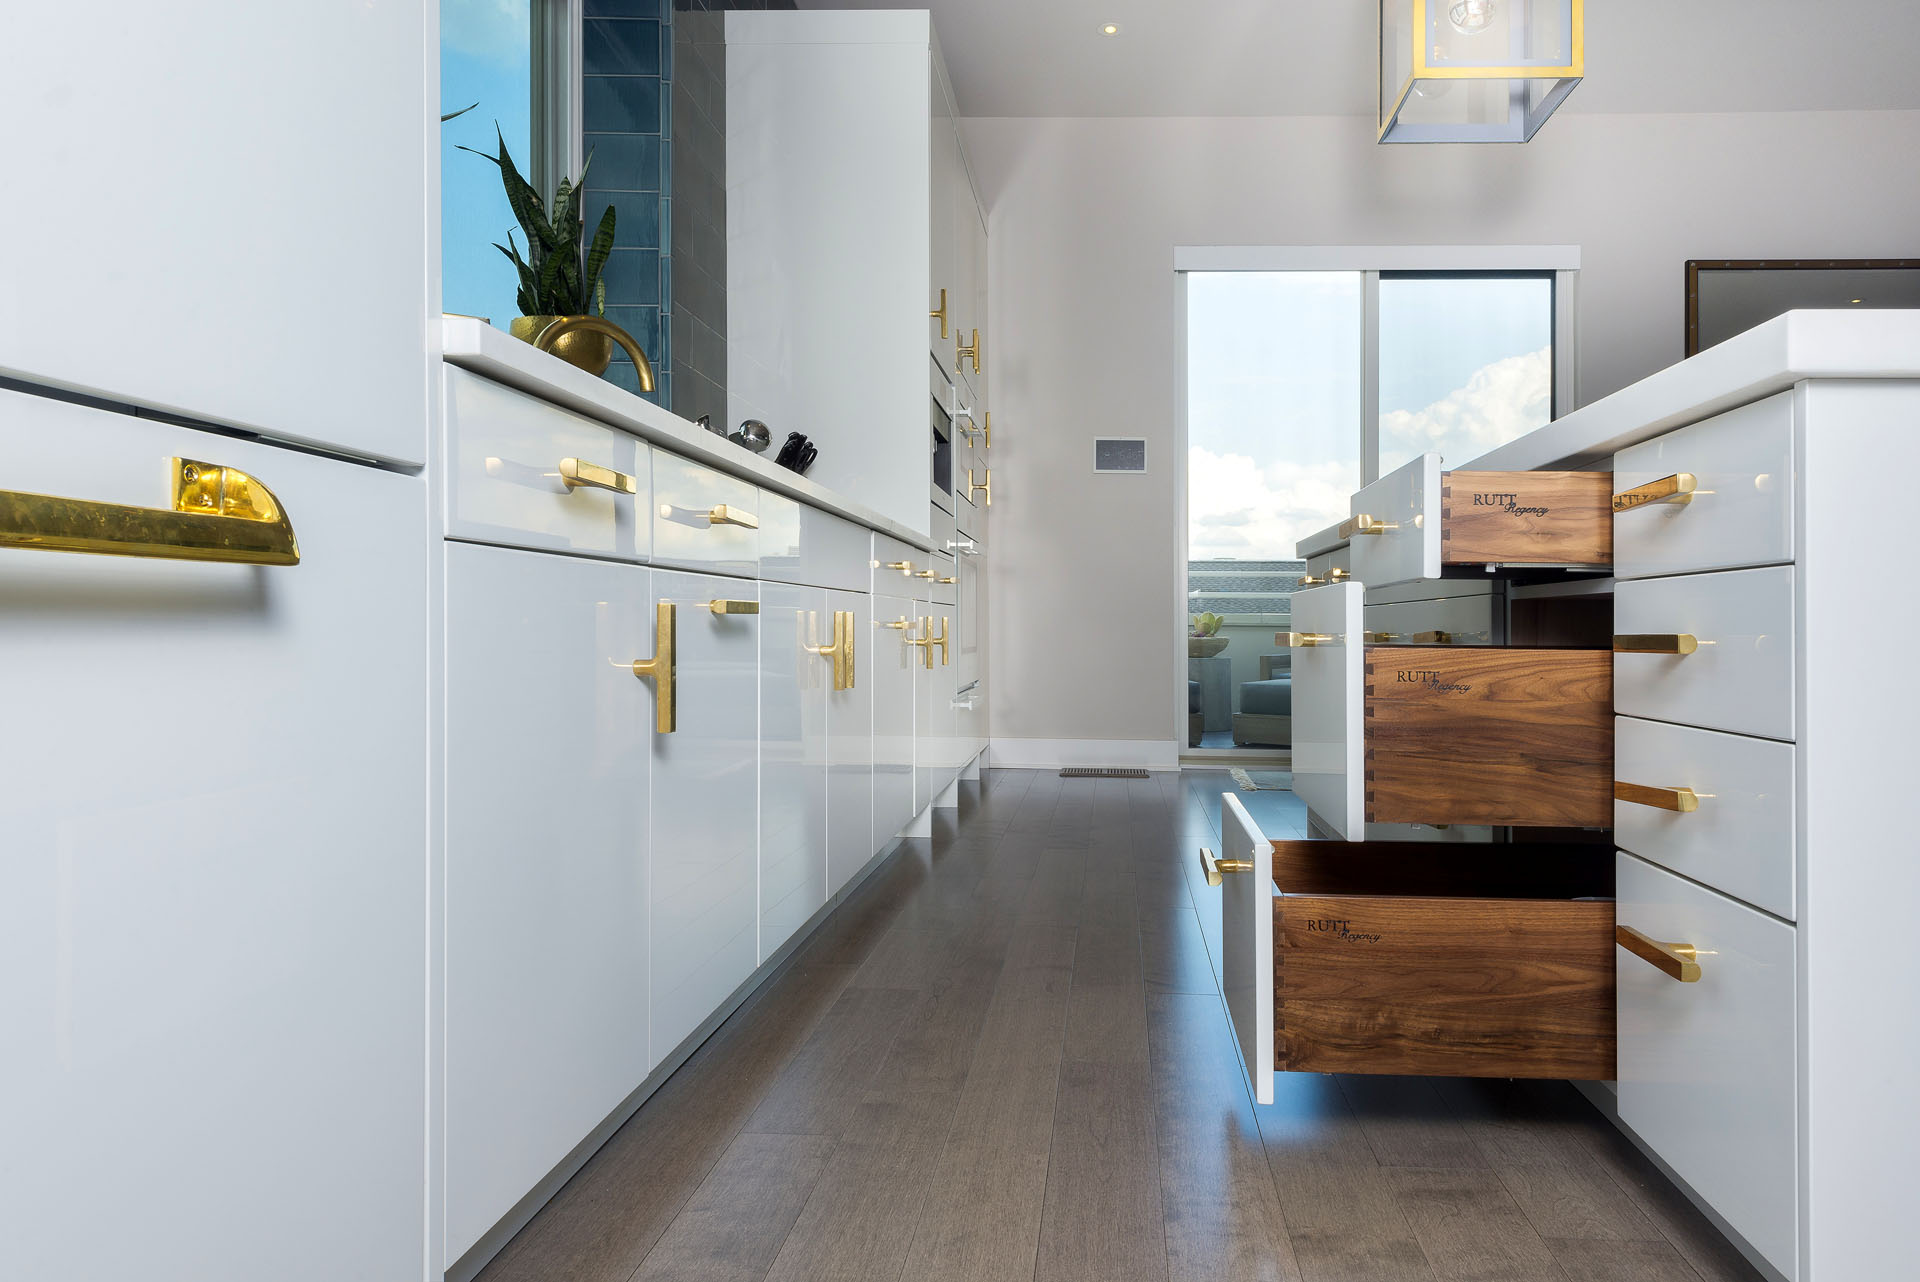 Penthouse Condo With Gloss-white Finish & Walnut Drawers